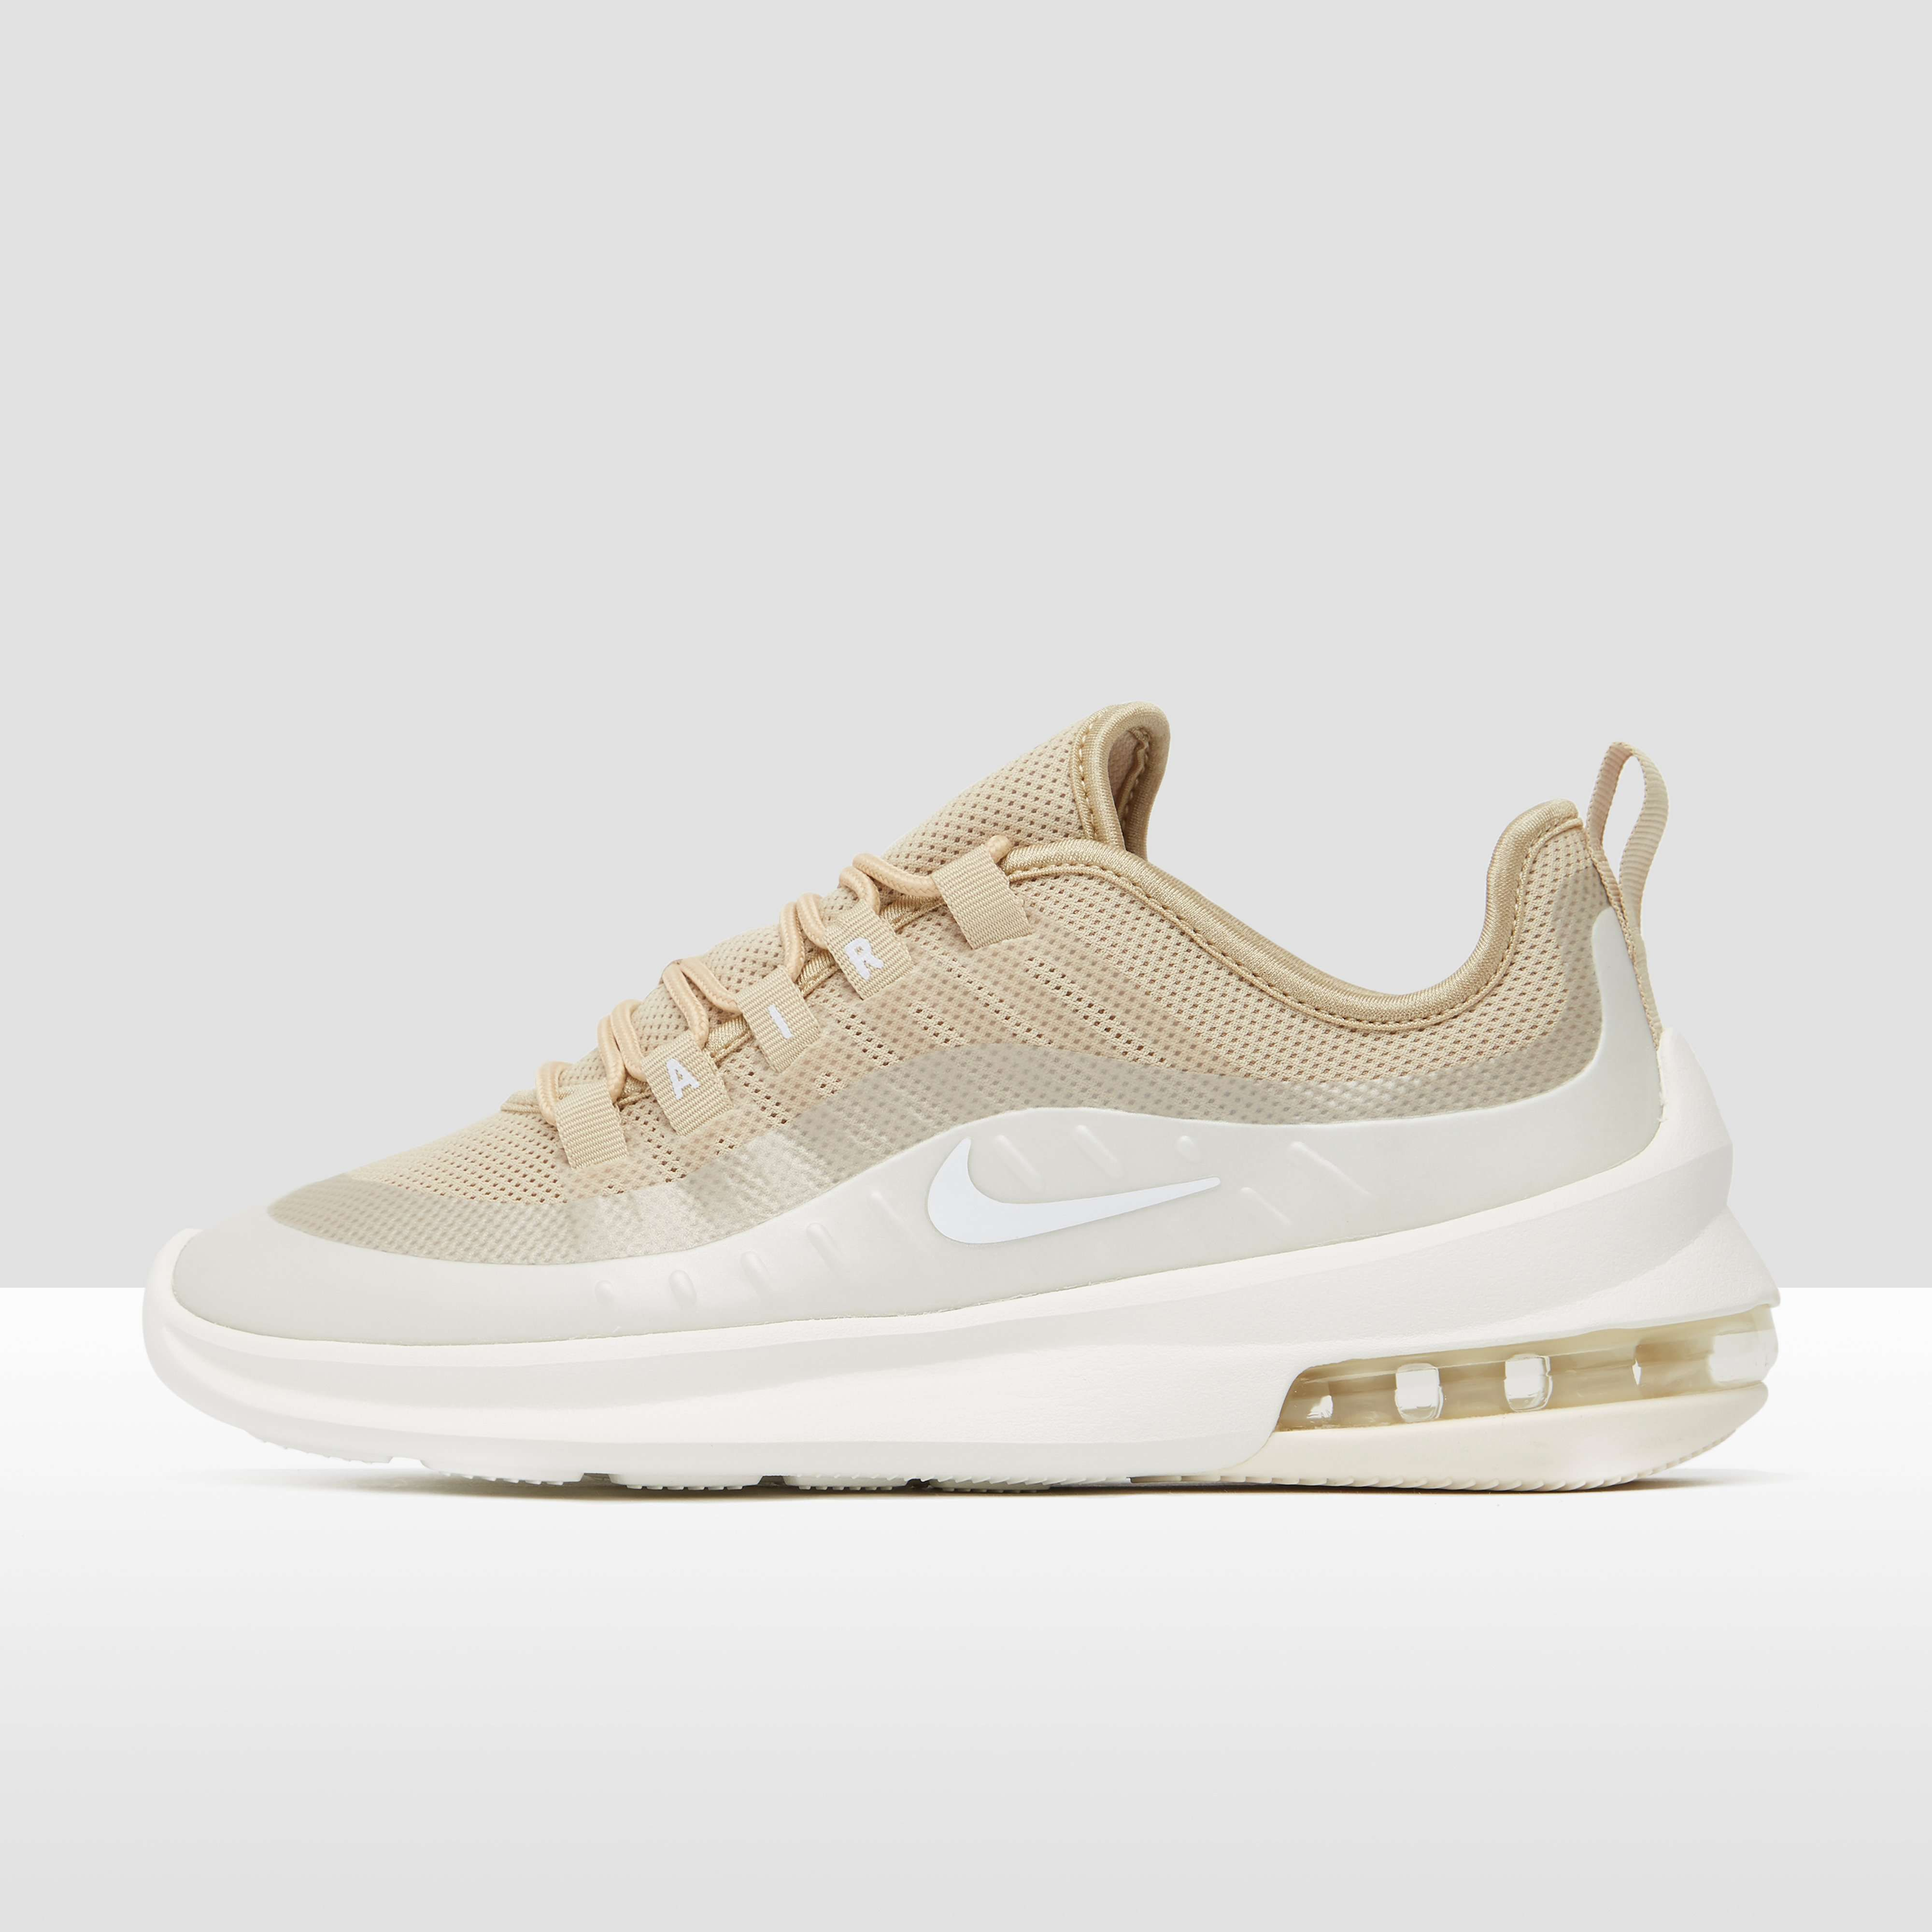 NIKE AIR MAX AXIS SNEAKERS ROZE DAMES | Nike air max, Nike ...